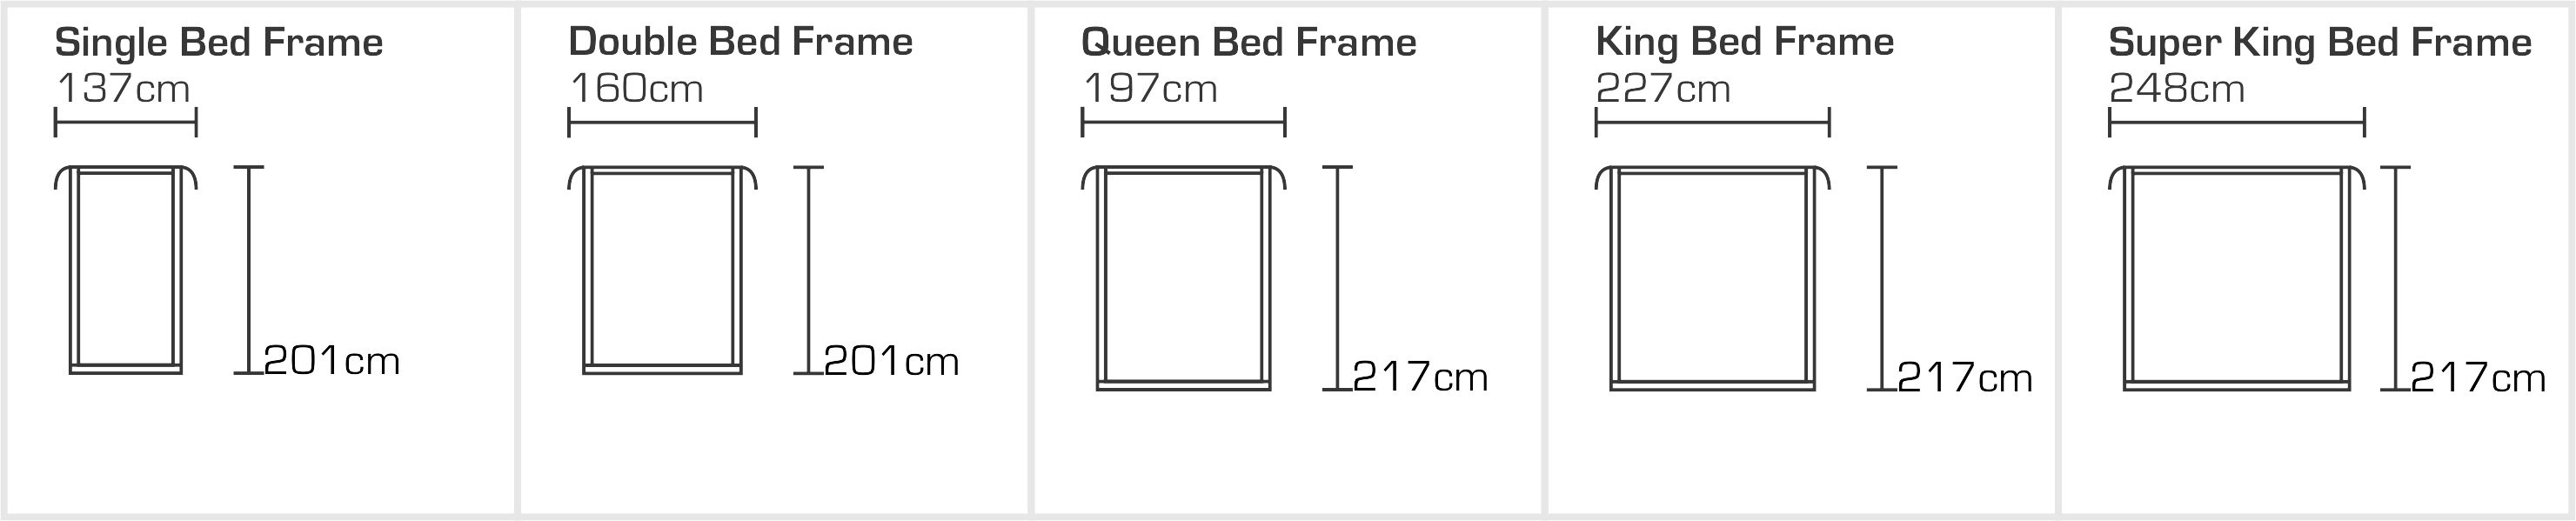 Venezia Bed Frame Sizes